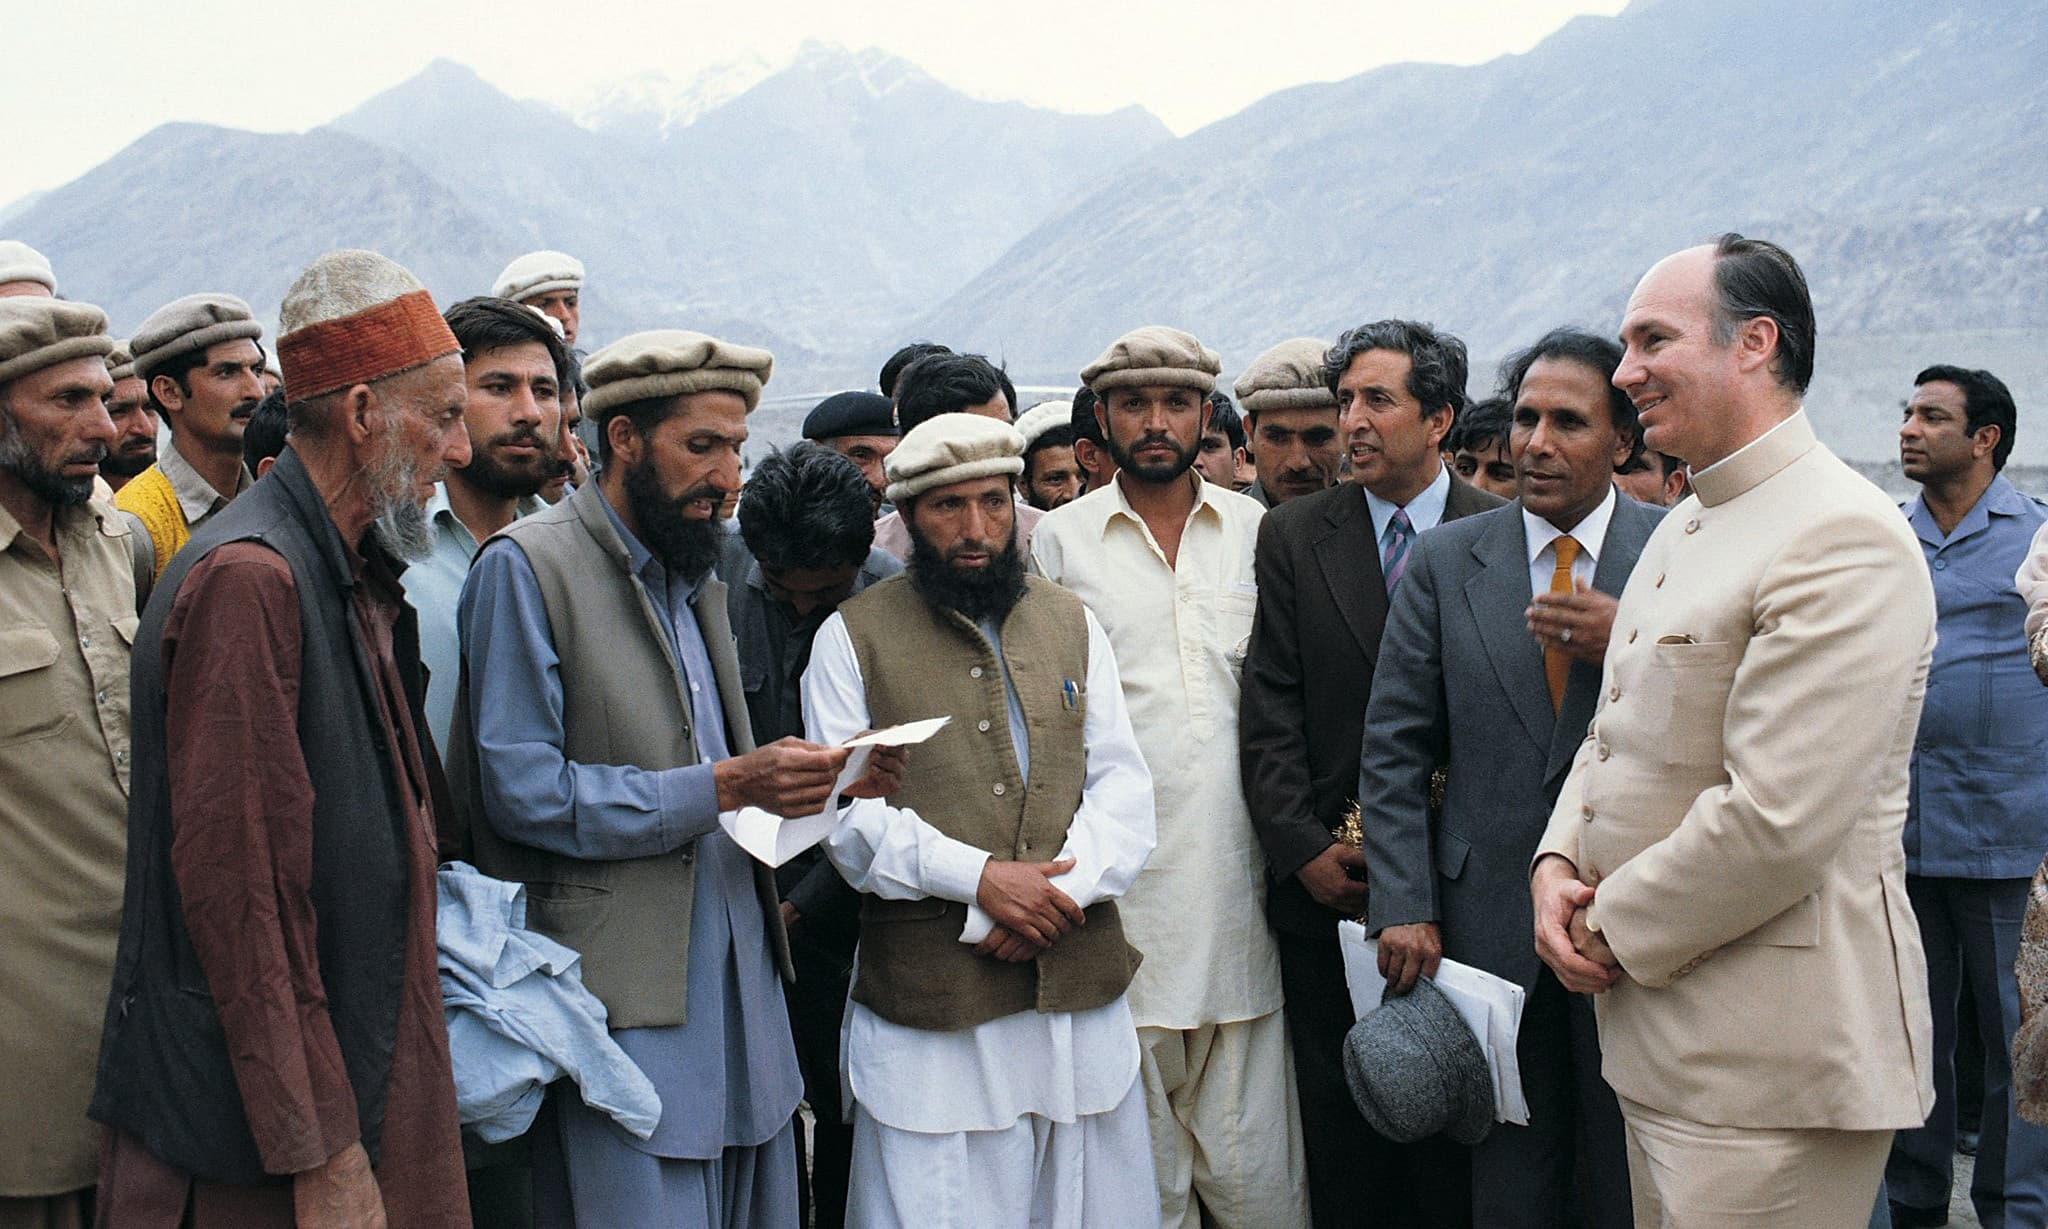 His Highness the Aga Khan meets with the inhabitants of northern areas of Pakistan to discuss the Aga Khan Rural Support Programme in Jaglot, near Gilgit, a new experimental rural development institution sponsored by the Aga Khan Foundation, May 1983. - Photo credit : AKDN / Christopher Little